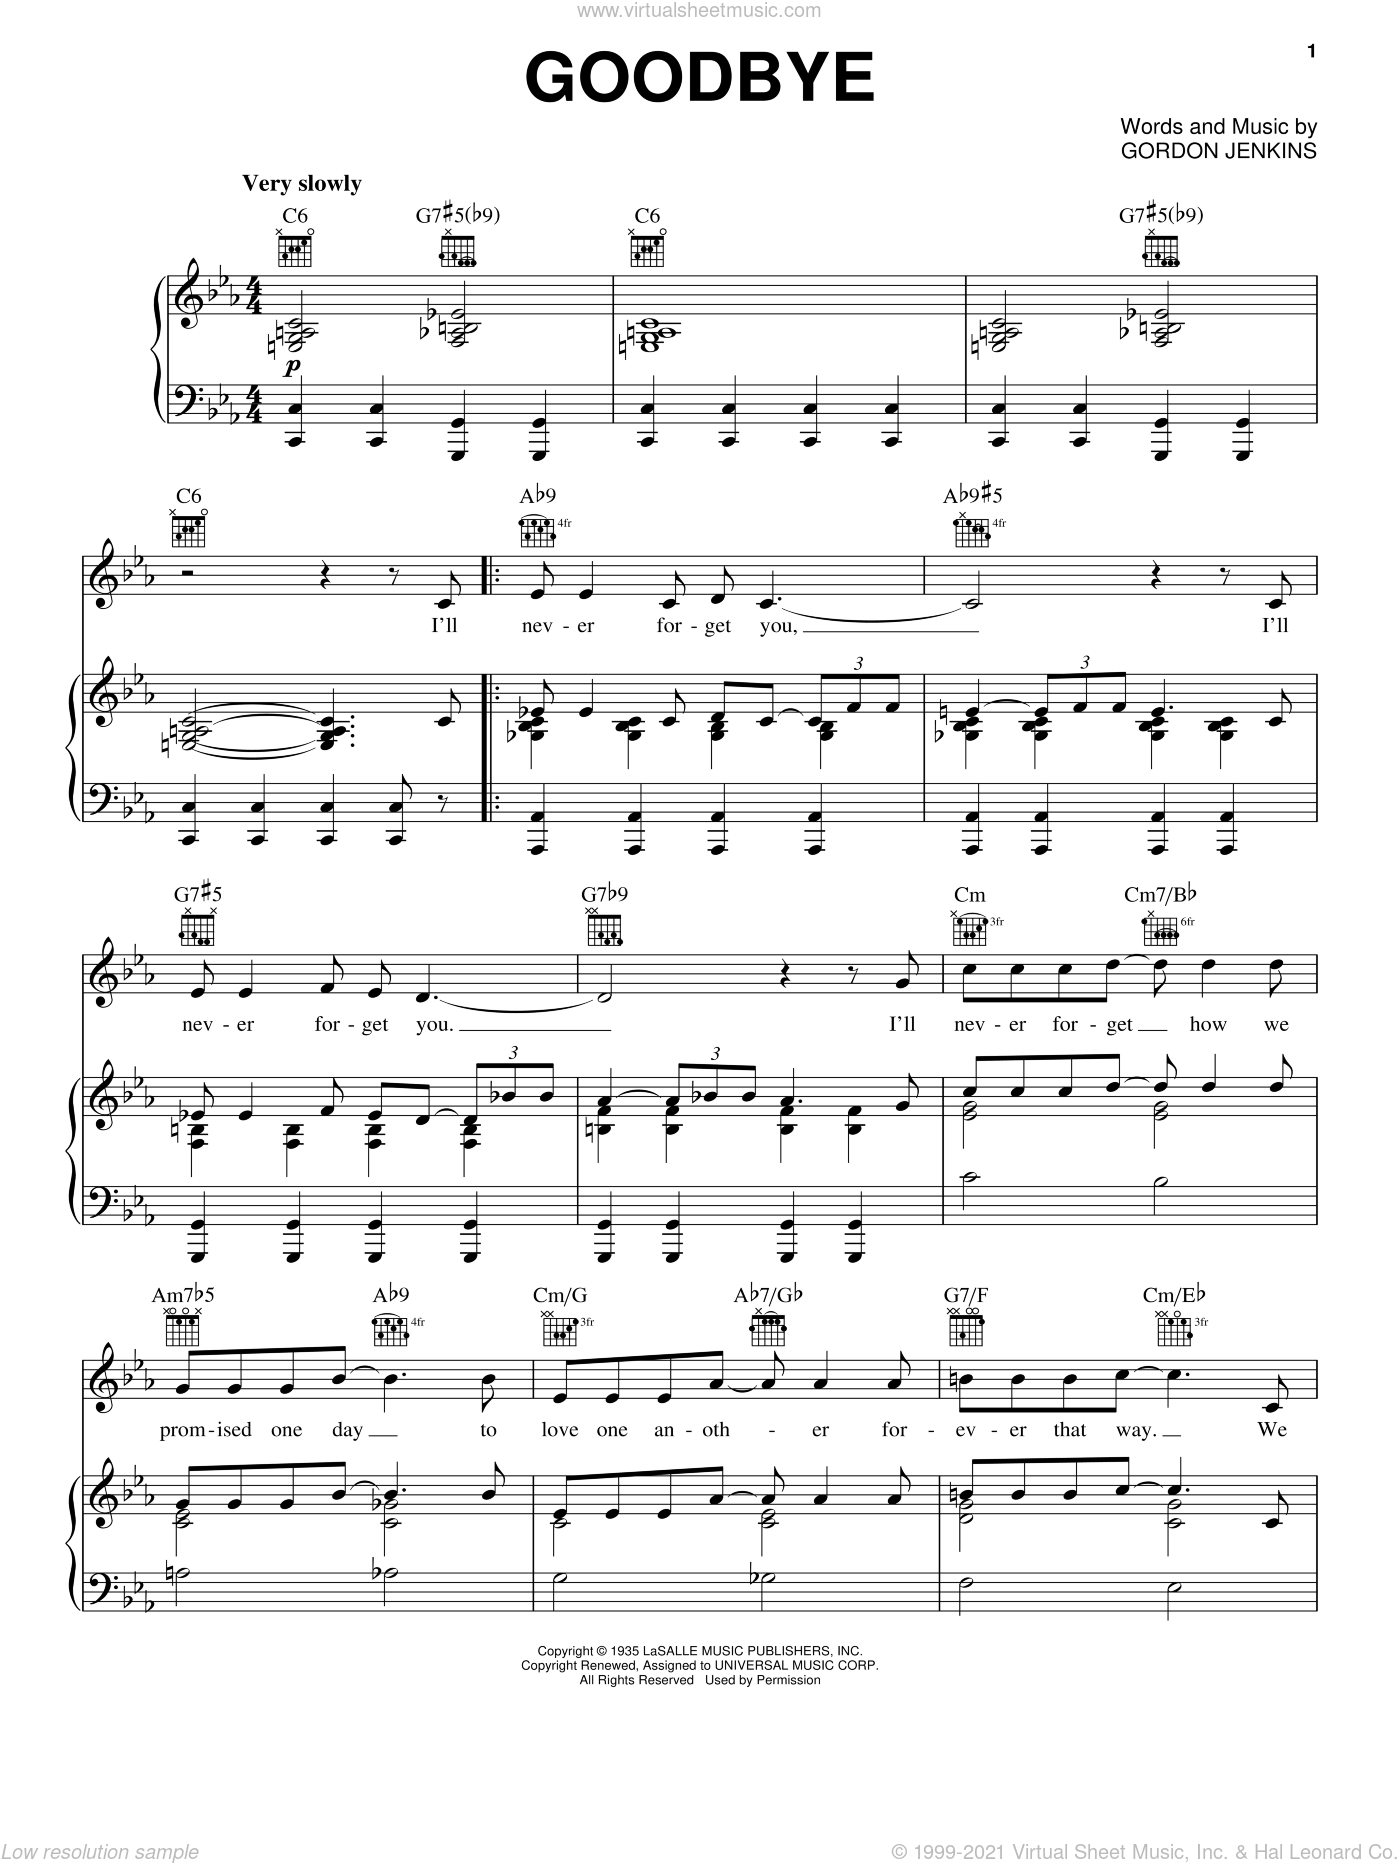 Goodbye sheet music for voice, piano or guitar by Gordon Jenkins